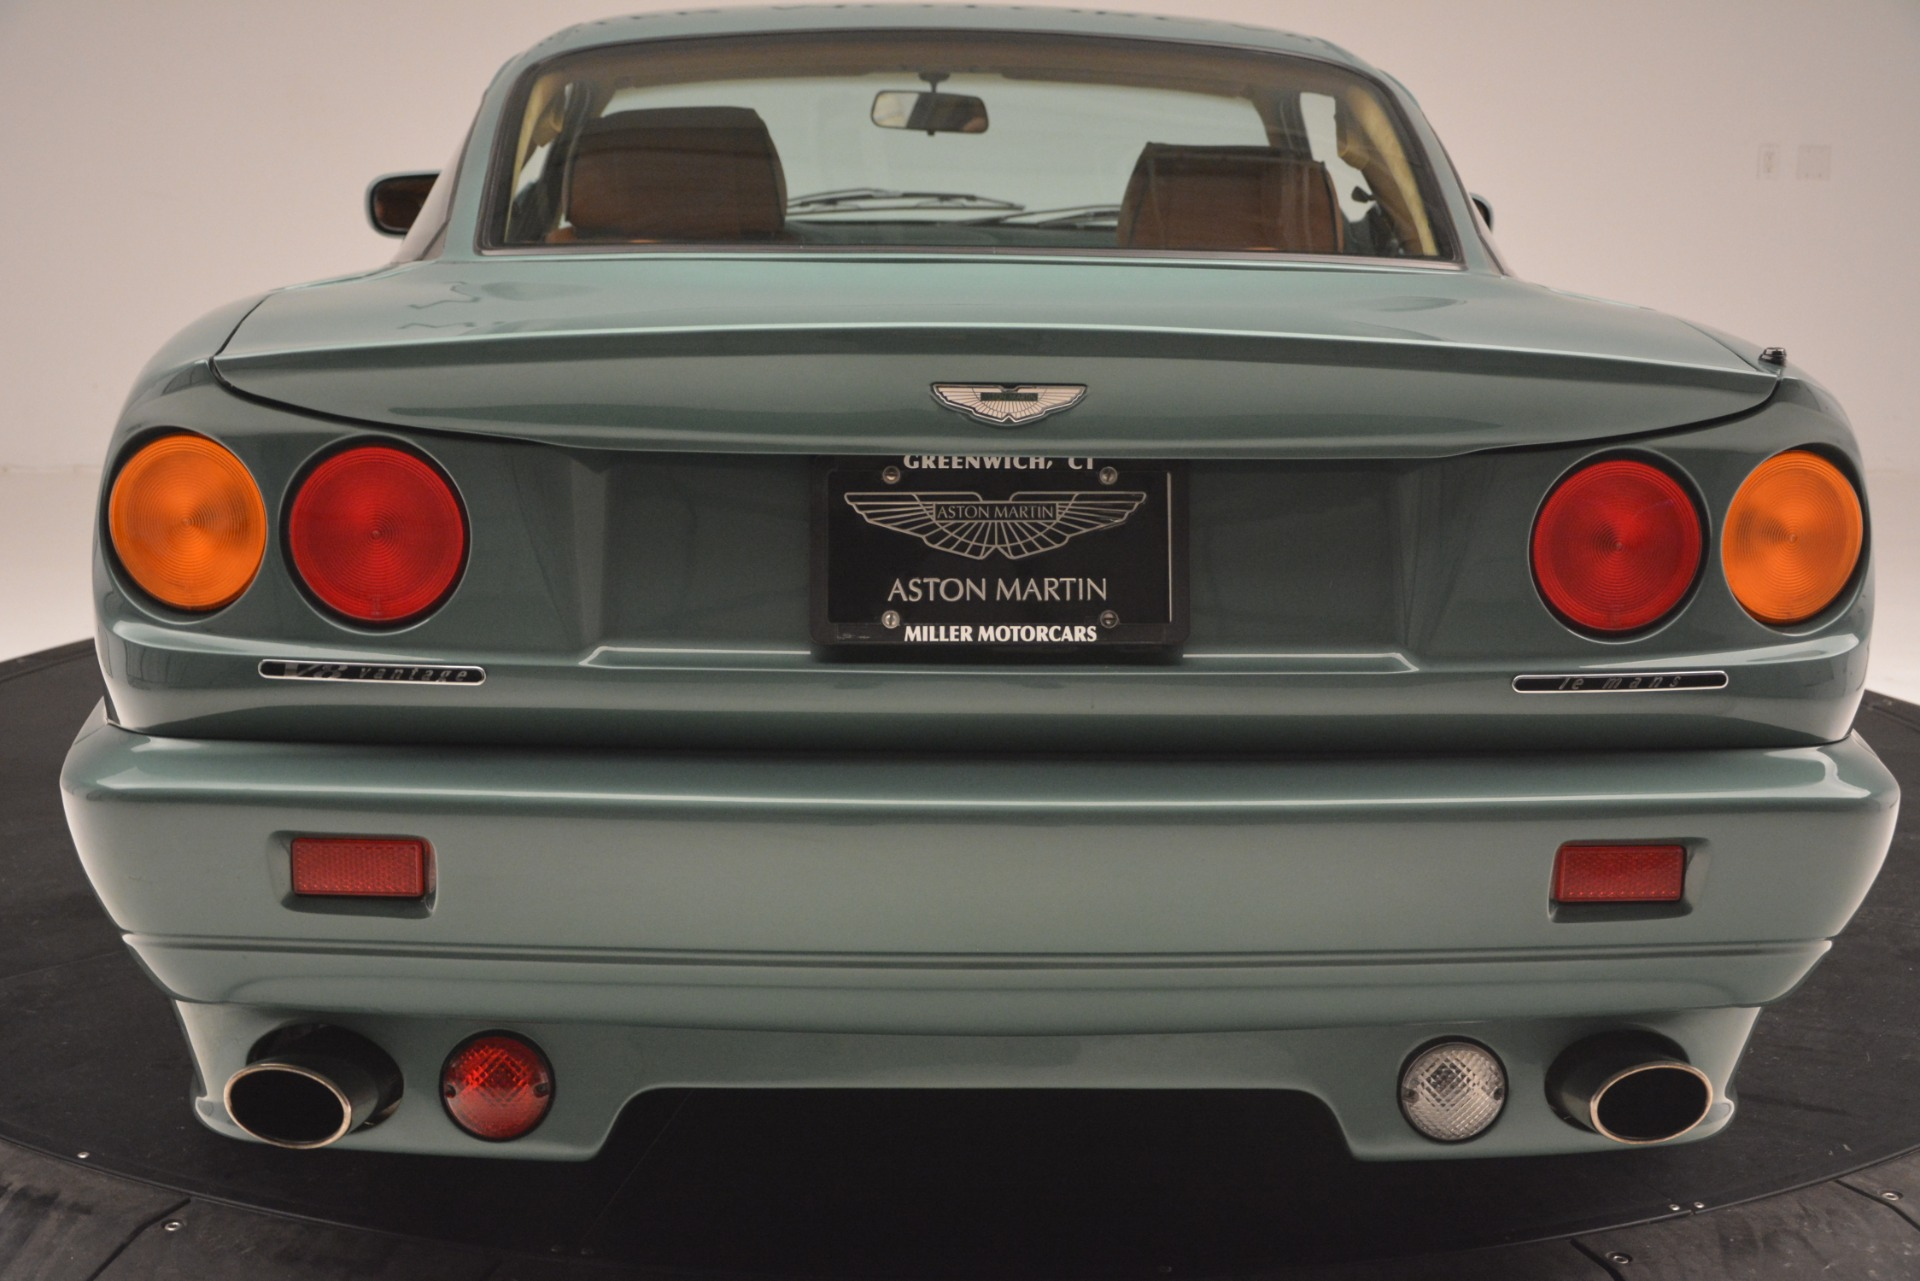 Used 1999 Aston Martin V8 Vantage Le Mans V600 Coupe For Sale In Greenwich, CT 2789_p43